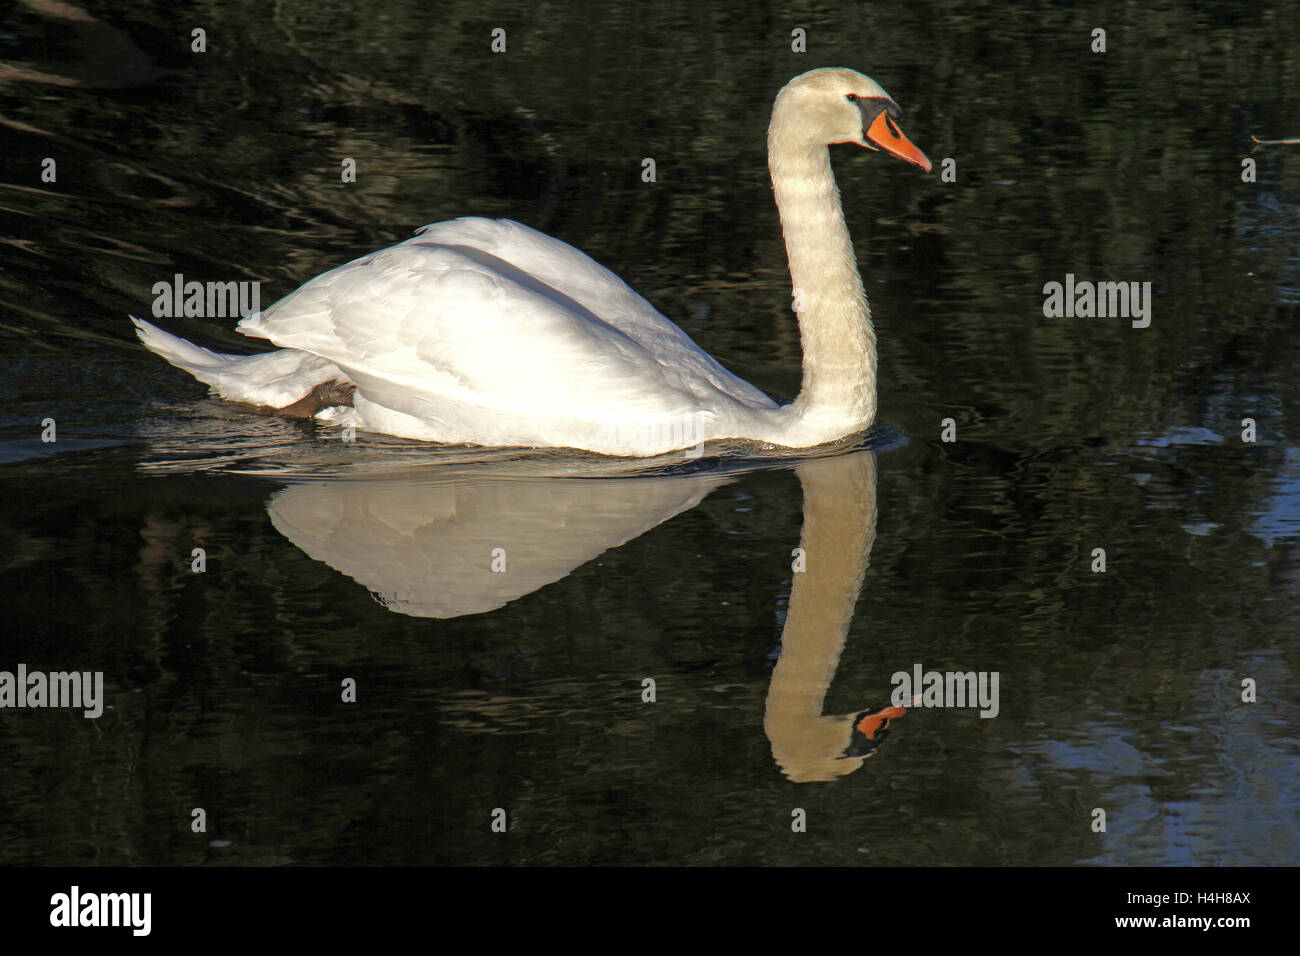 mute swan with elegant reflection Latin cygnus olor family anatidae swimming in the river at Port Meadow Oxford - Stock Image